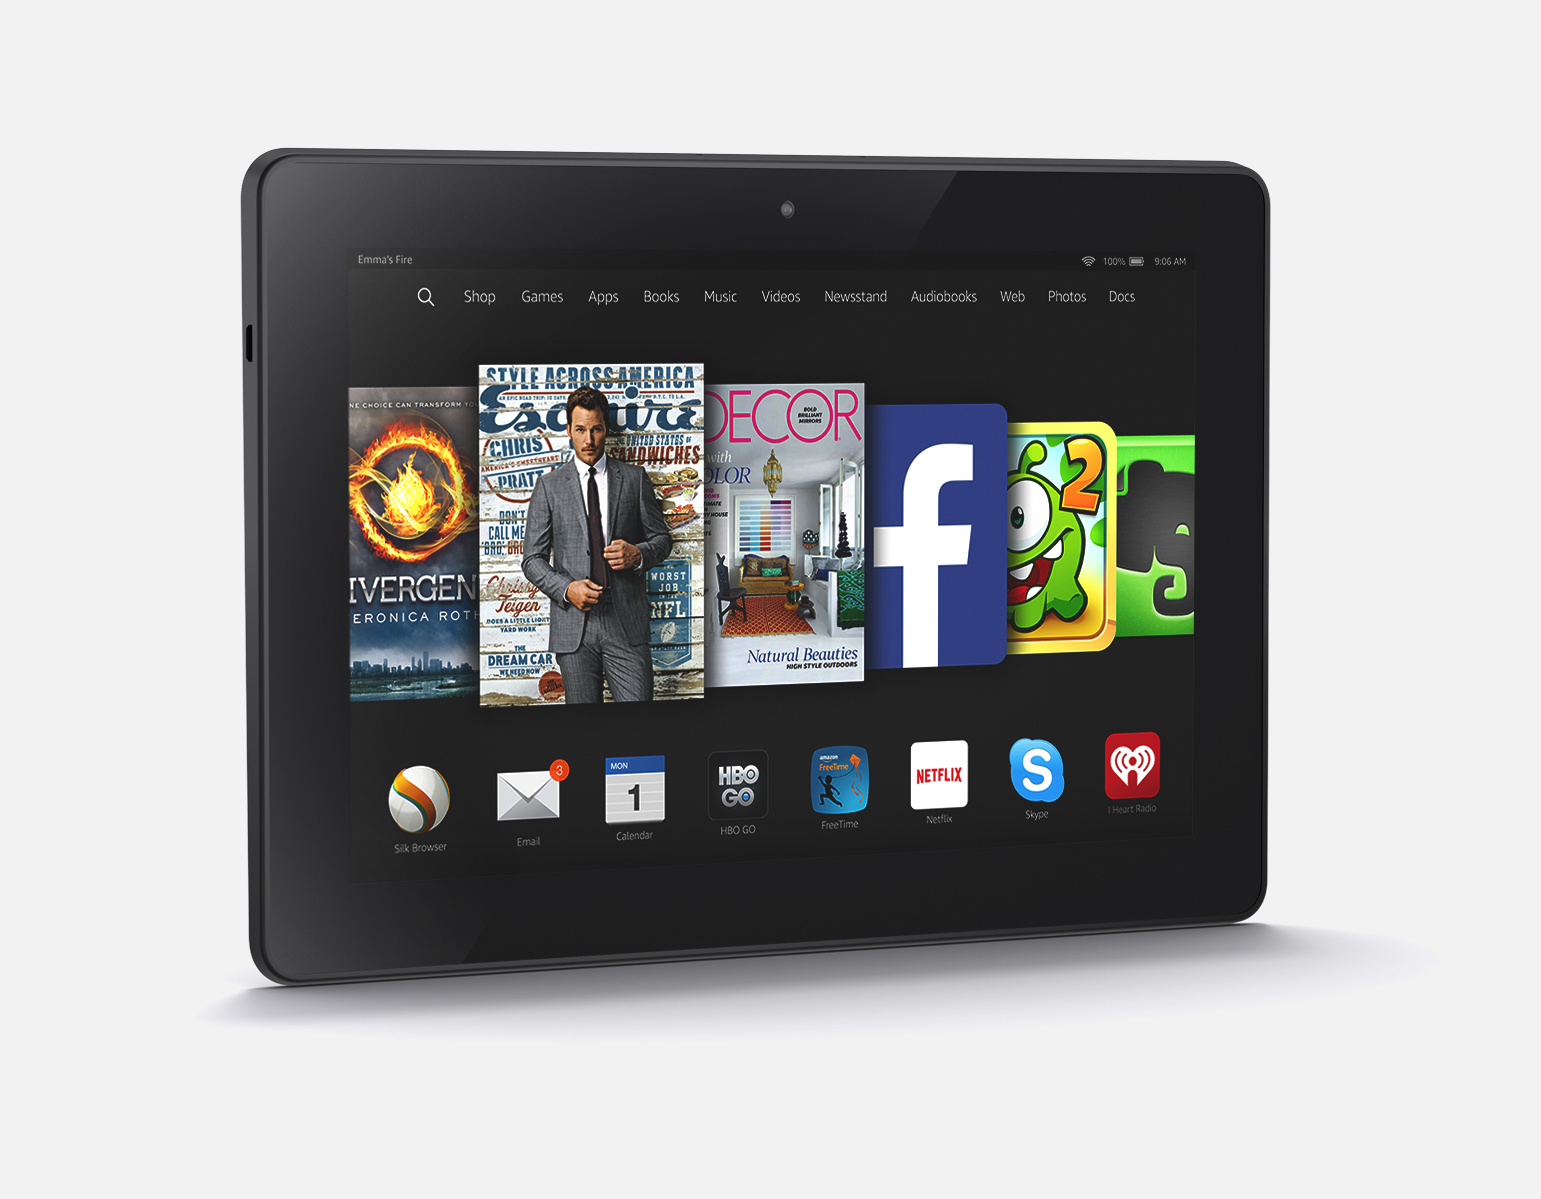 Amazon's Fire HDX 8.9 tablet computer.